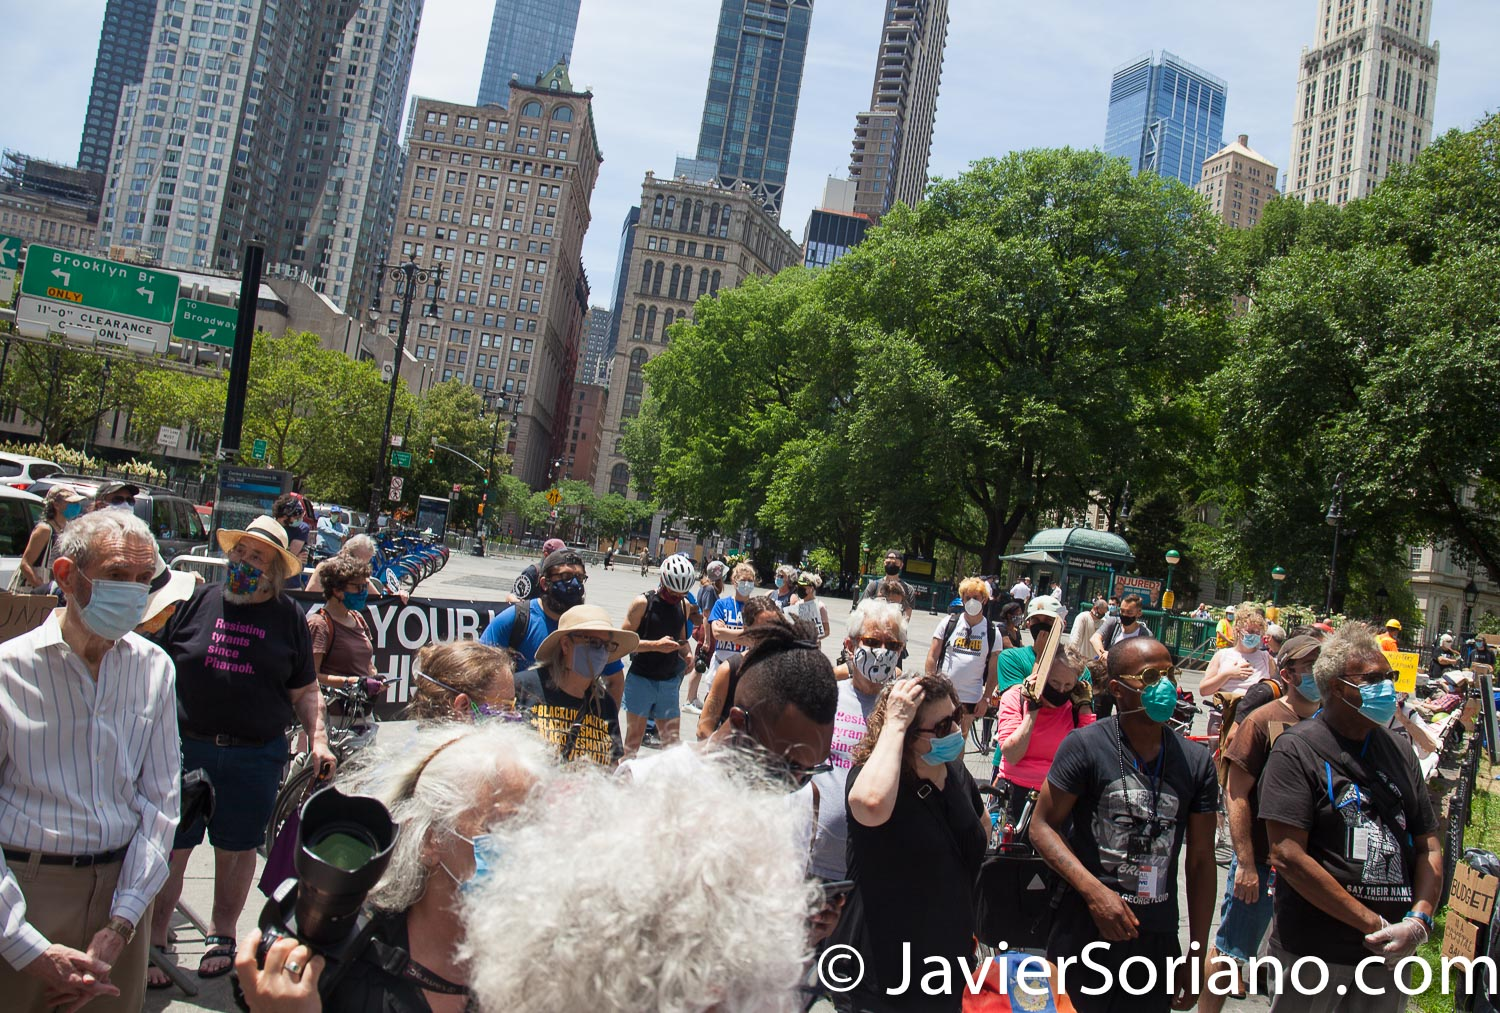 """Wednesday, June 24, 2020. New York City – Rally """"Elders For Black Lives"""" in City Hall Park, Manhattan, New York City. """"Elders For Black Lives"""" demand that NYC Council members and NYC Mayor Bill de Blasio cut at least $1 Billion from the NYPD budget and invest in Black lives, in elder care, in education, housing, jobs, healthcare, and social services. Photo by Javier Soriano/www.JavierSoriano.com"""